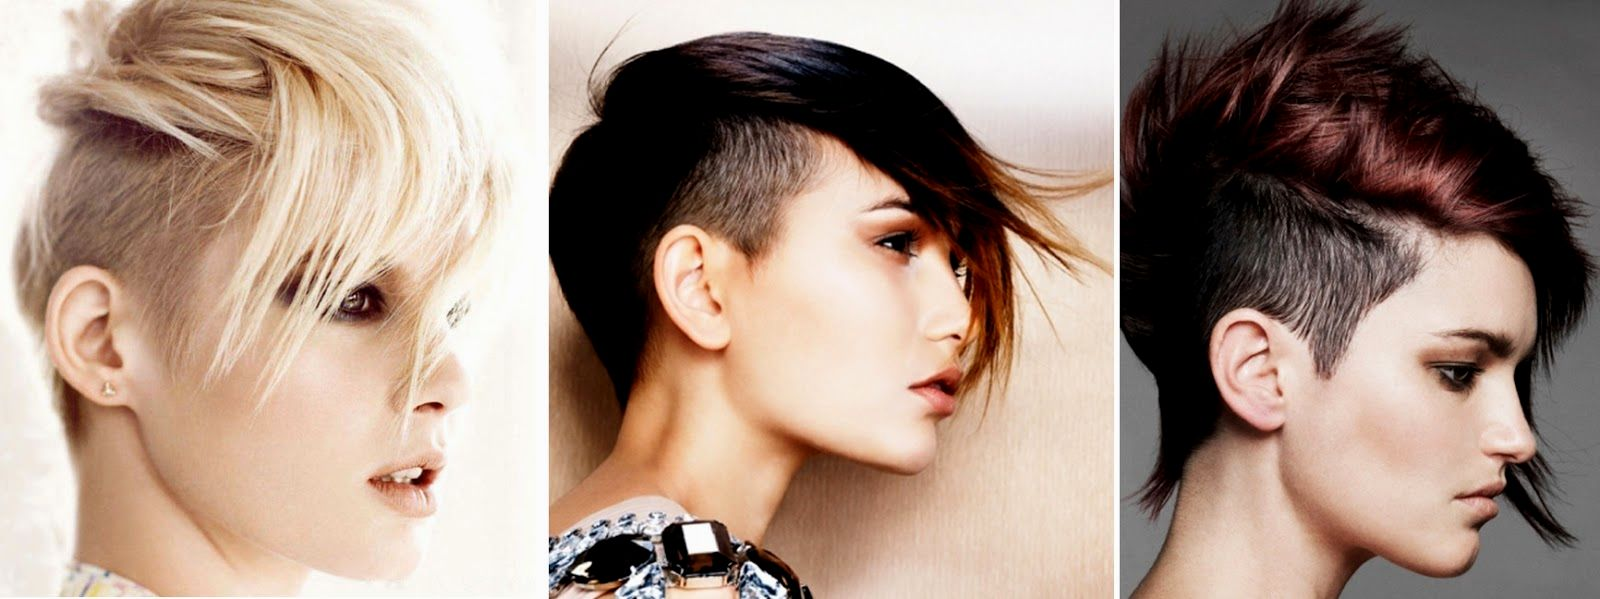 lovely short hairstyles with long top hair portrait-fantastic short hairstyles with long topcoat portrait